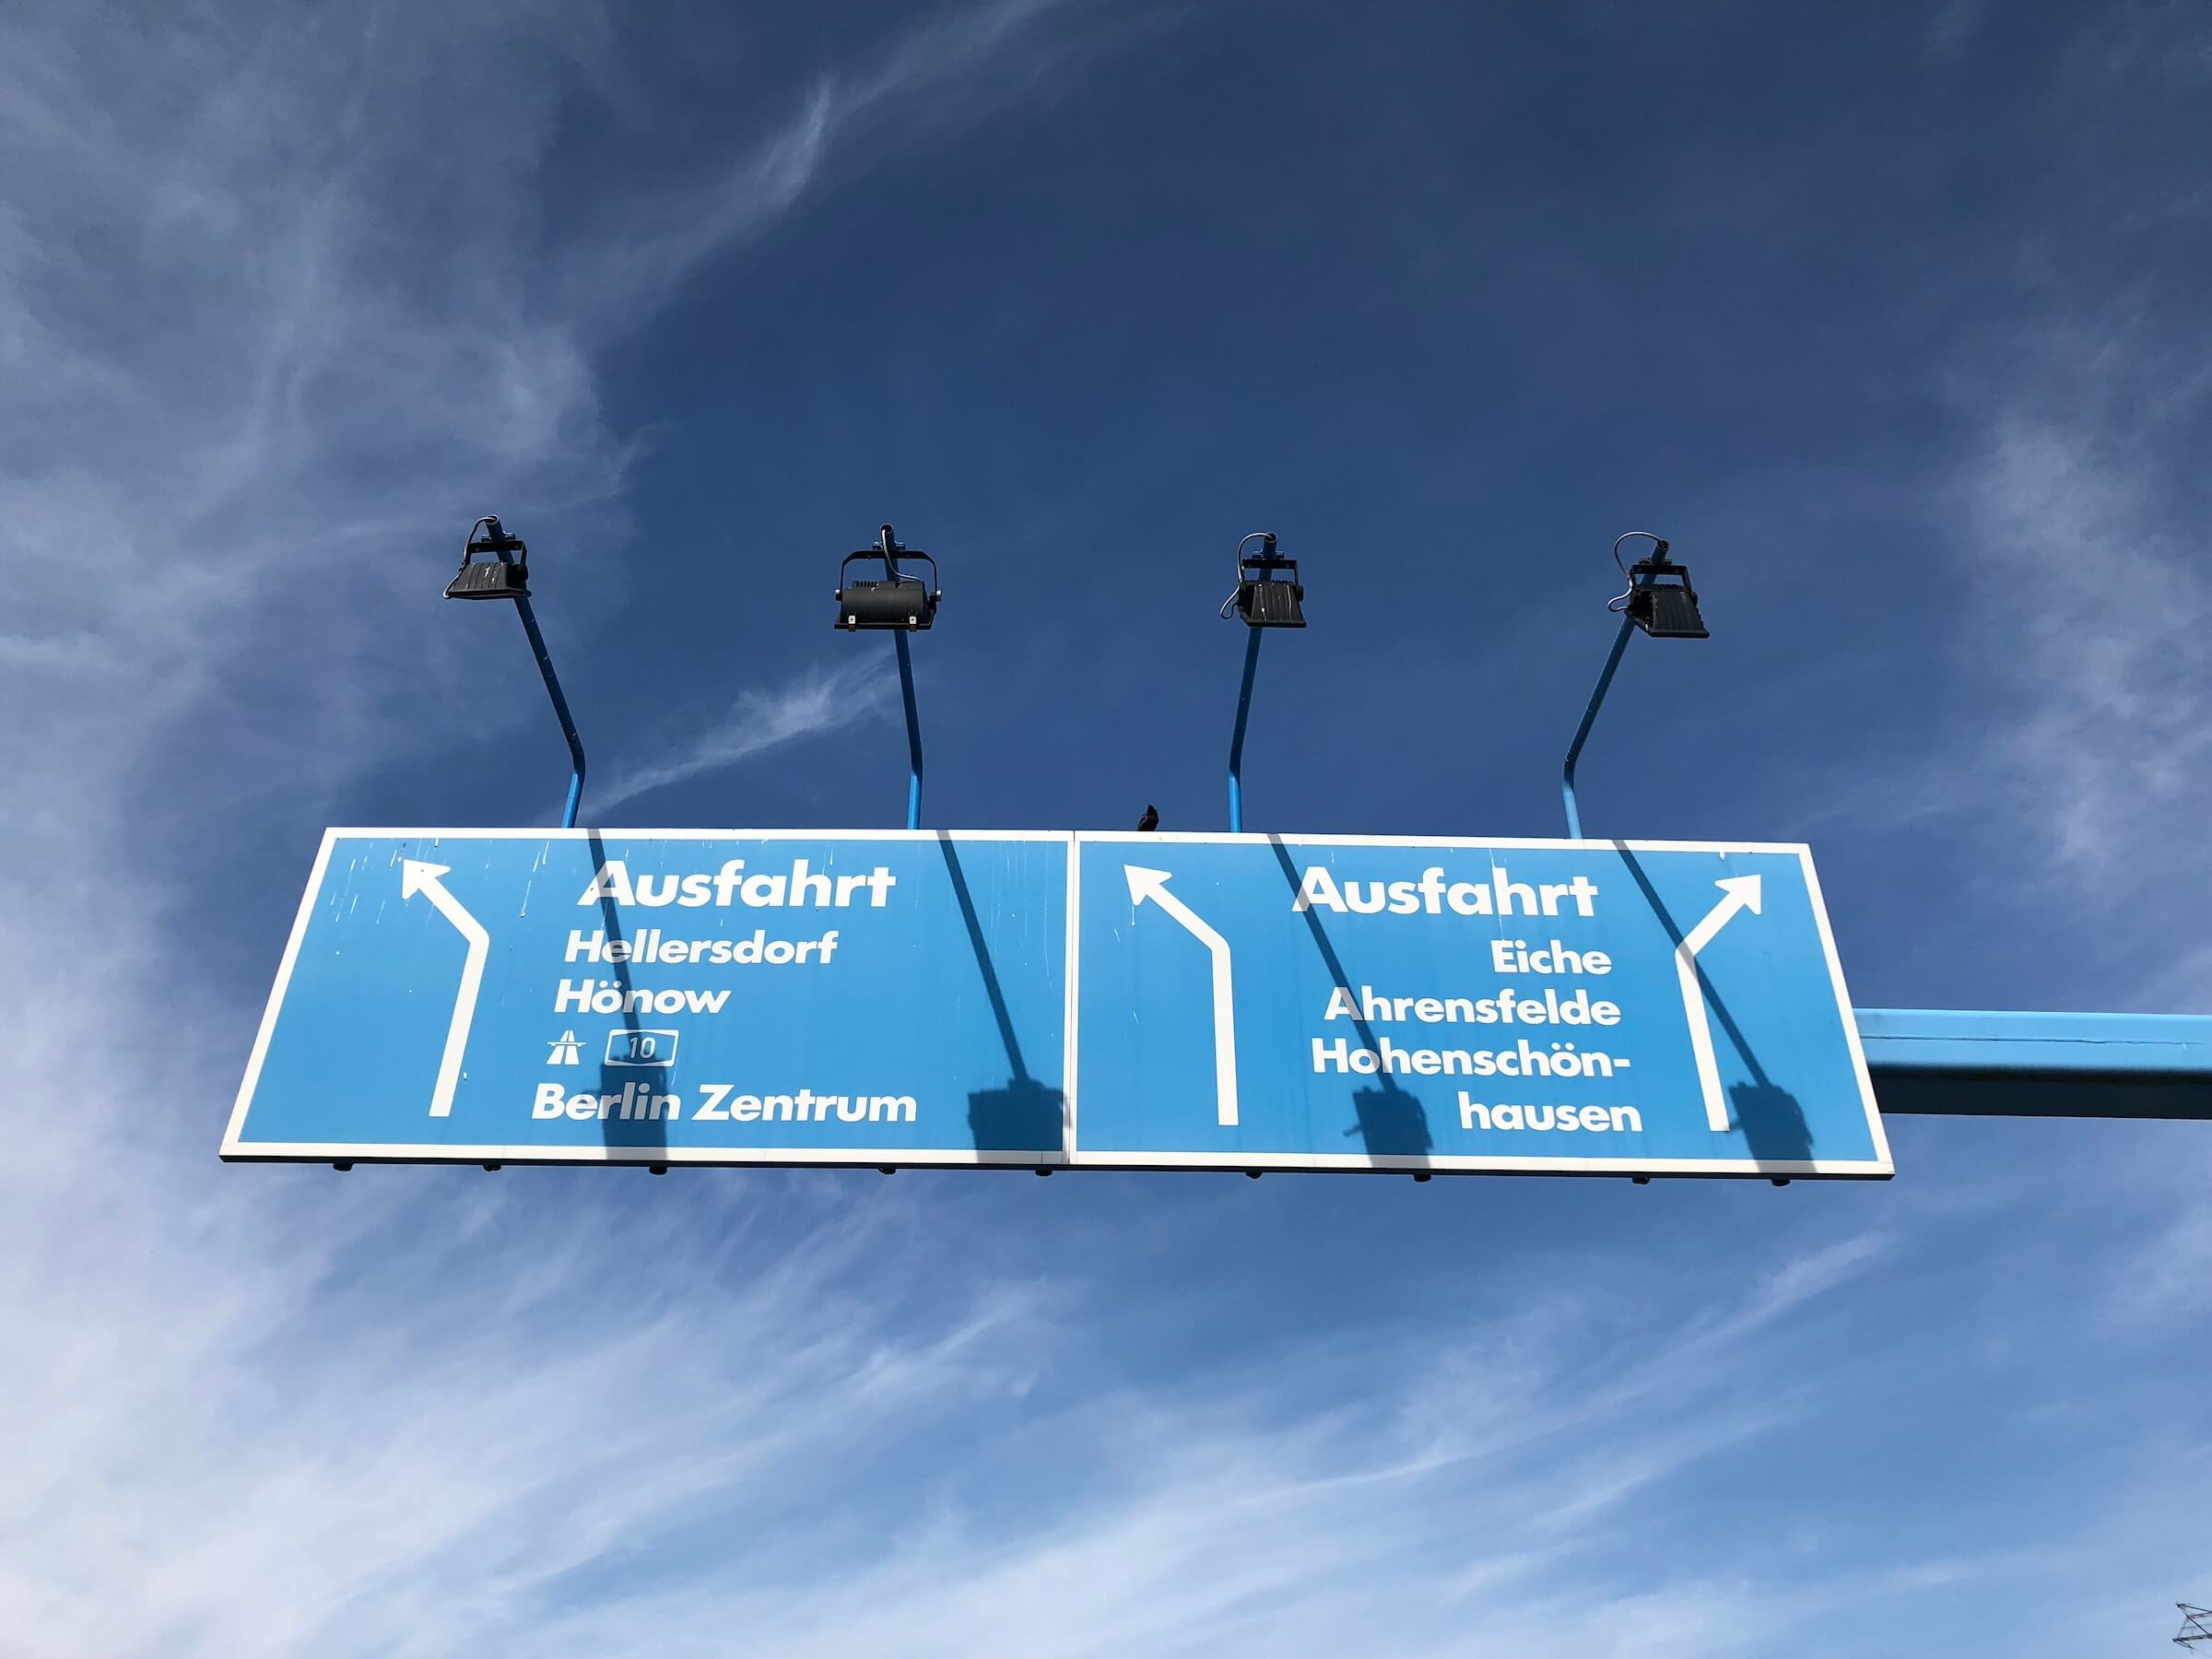 Front angle: Blue street sign showing direction in white letters with lights creating shadows on the surface and dark-blue sky with soft clouds